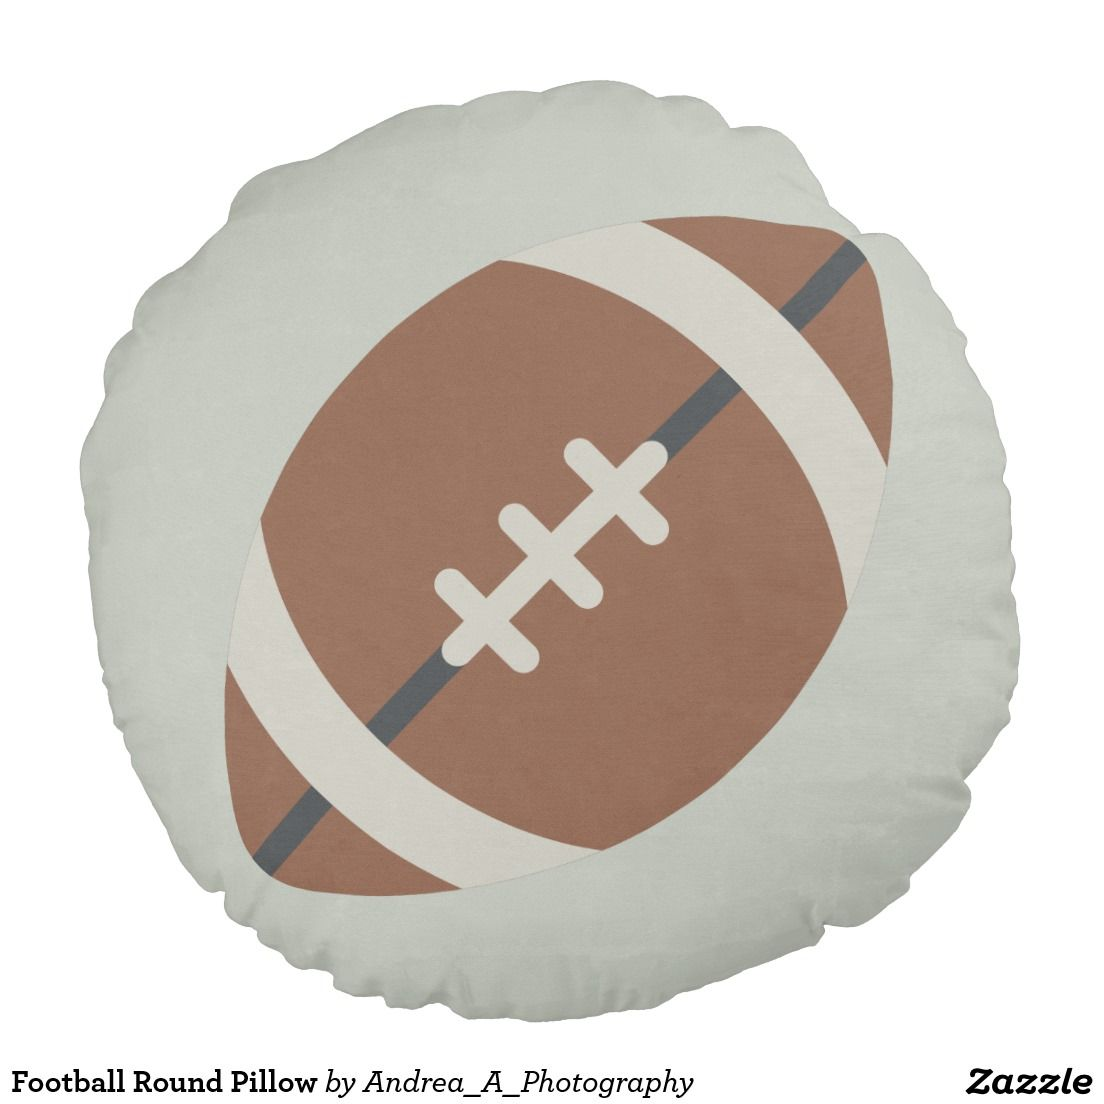 Football Round Pillow